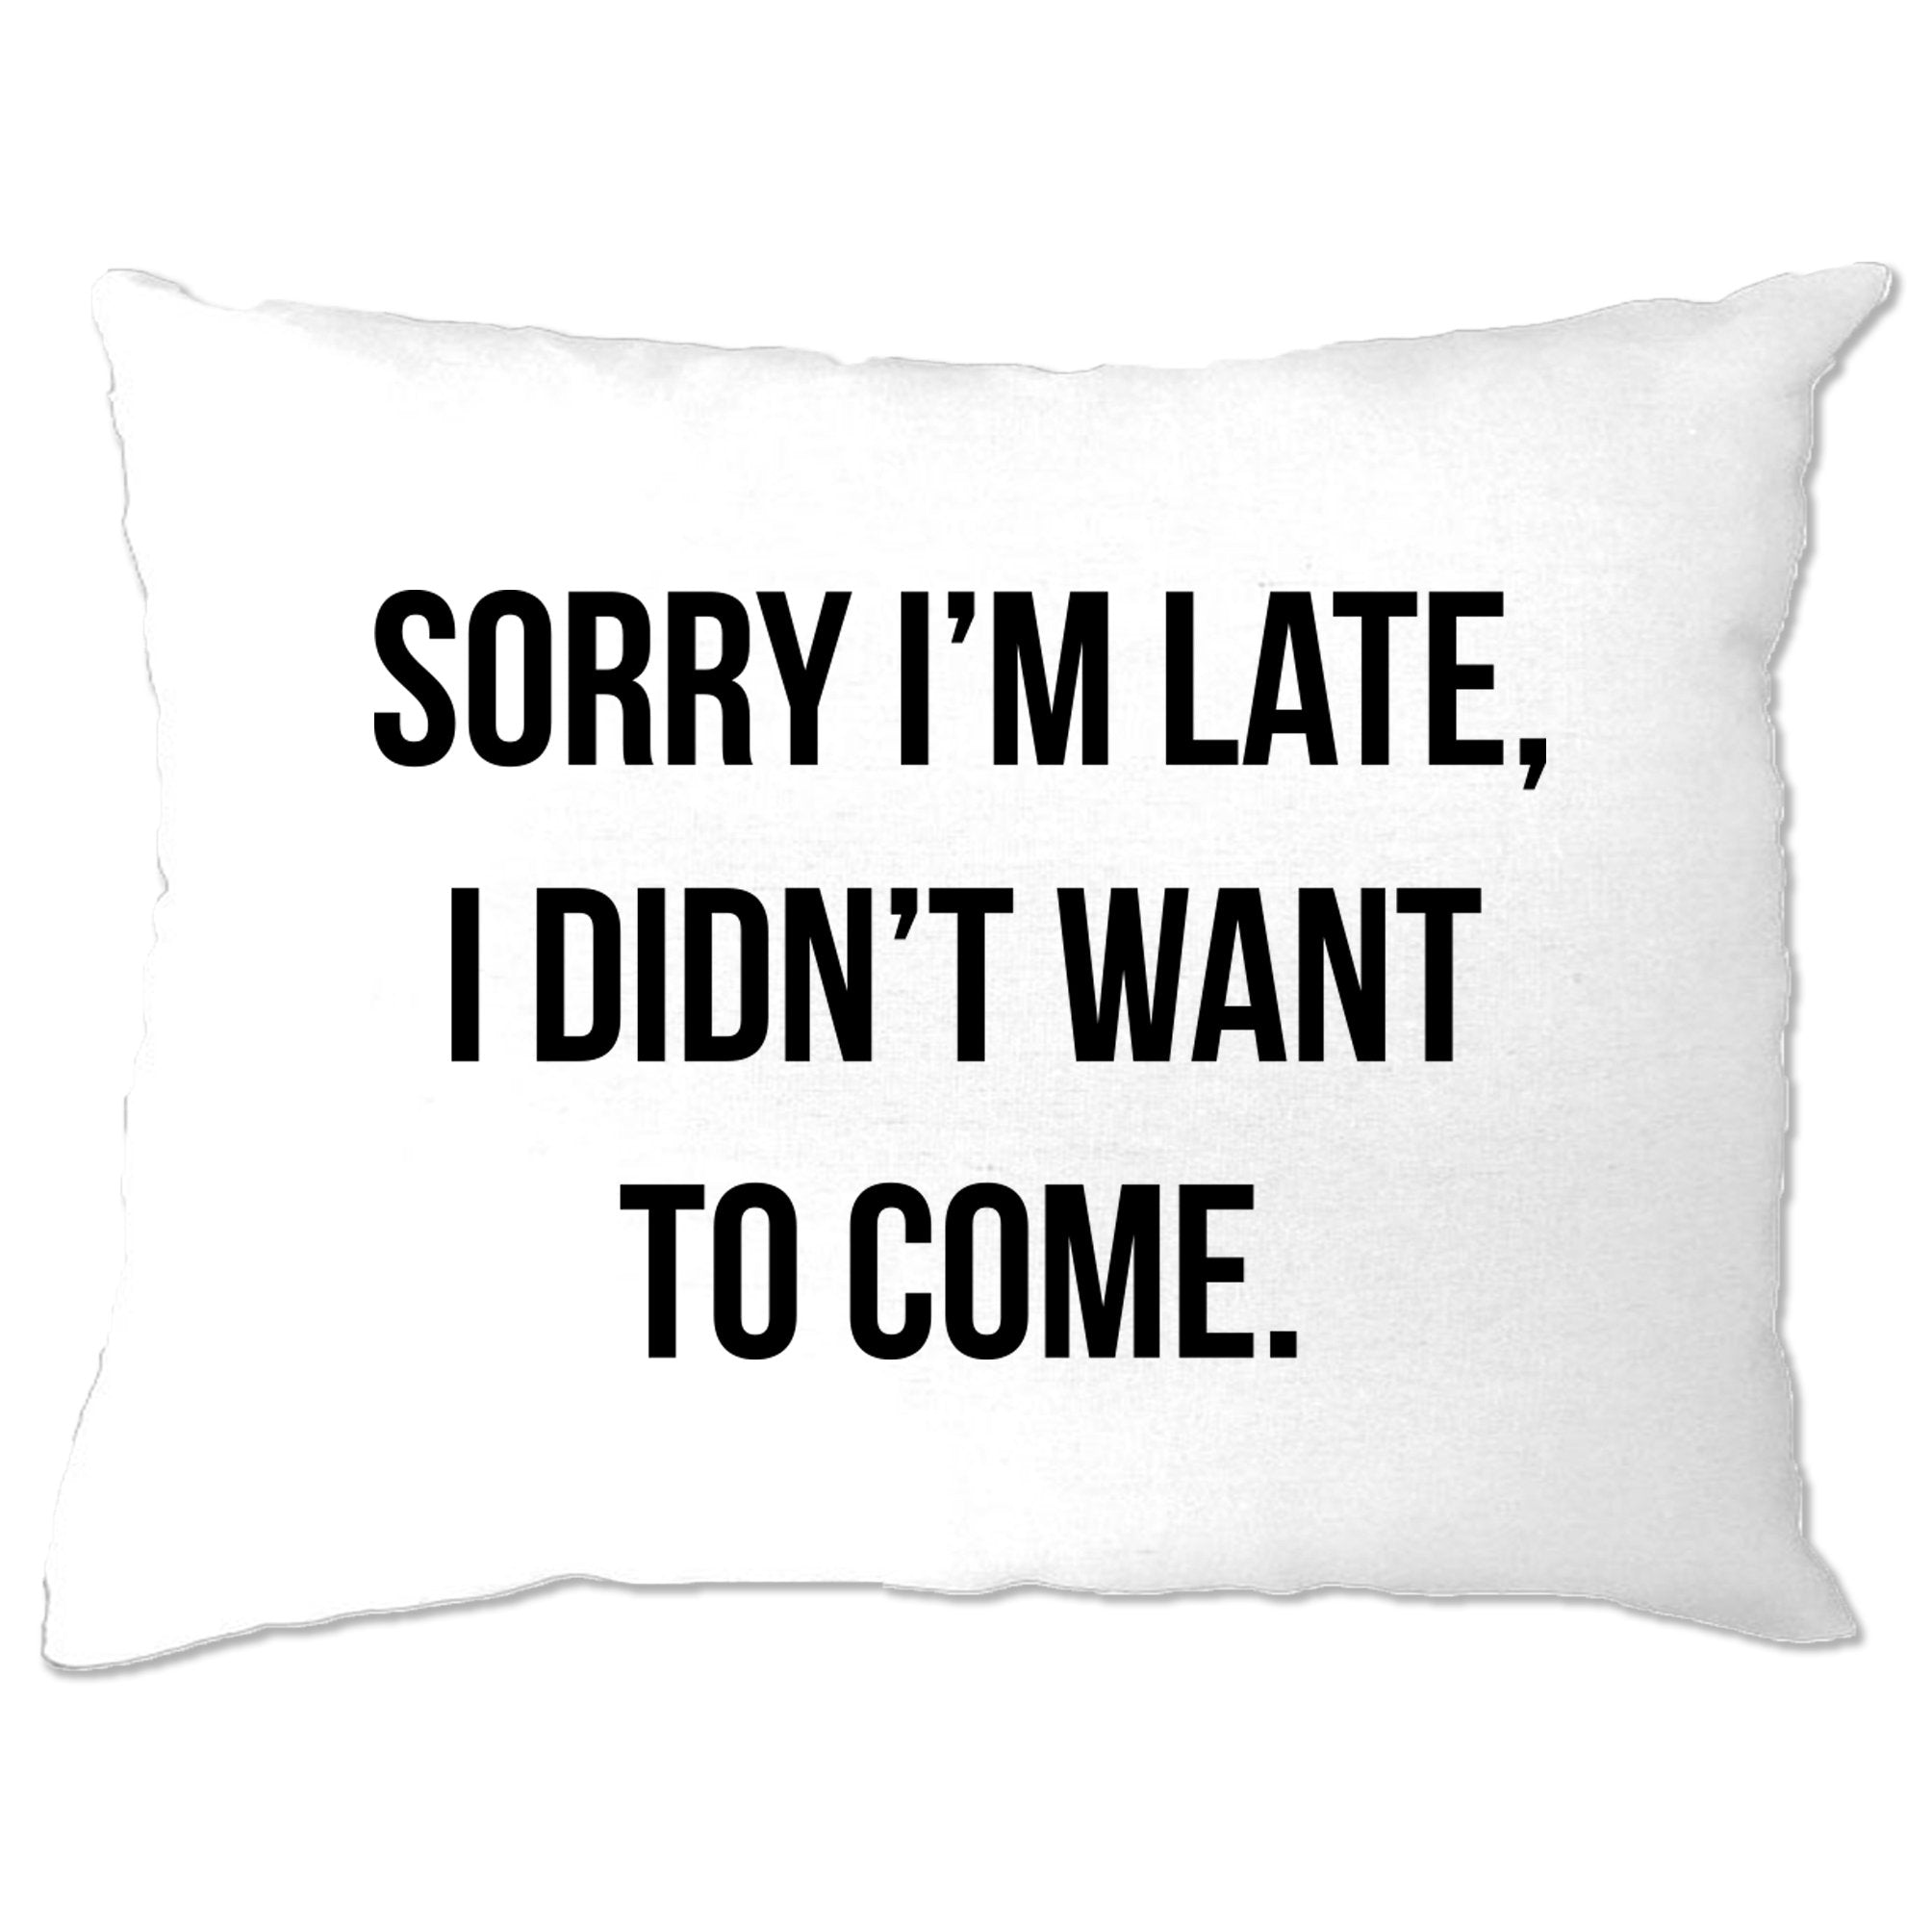 Novelty Pillow Case Sorry I'm Late, I Didn't Want To Come